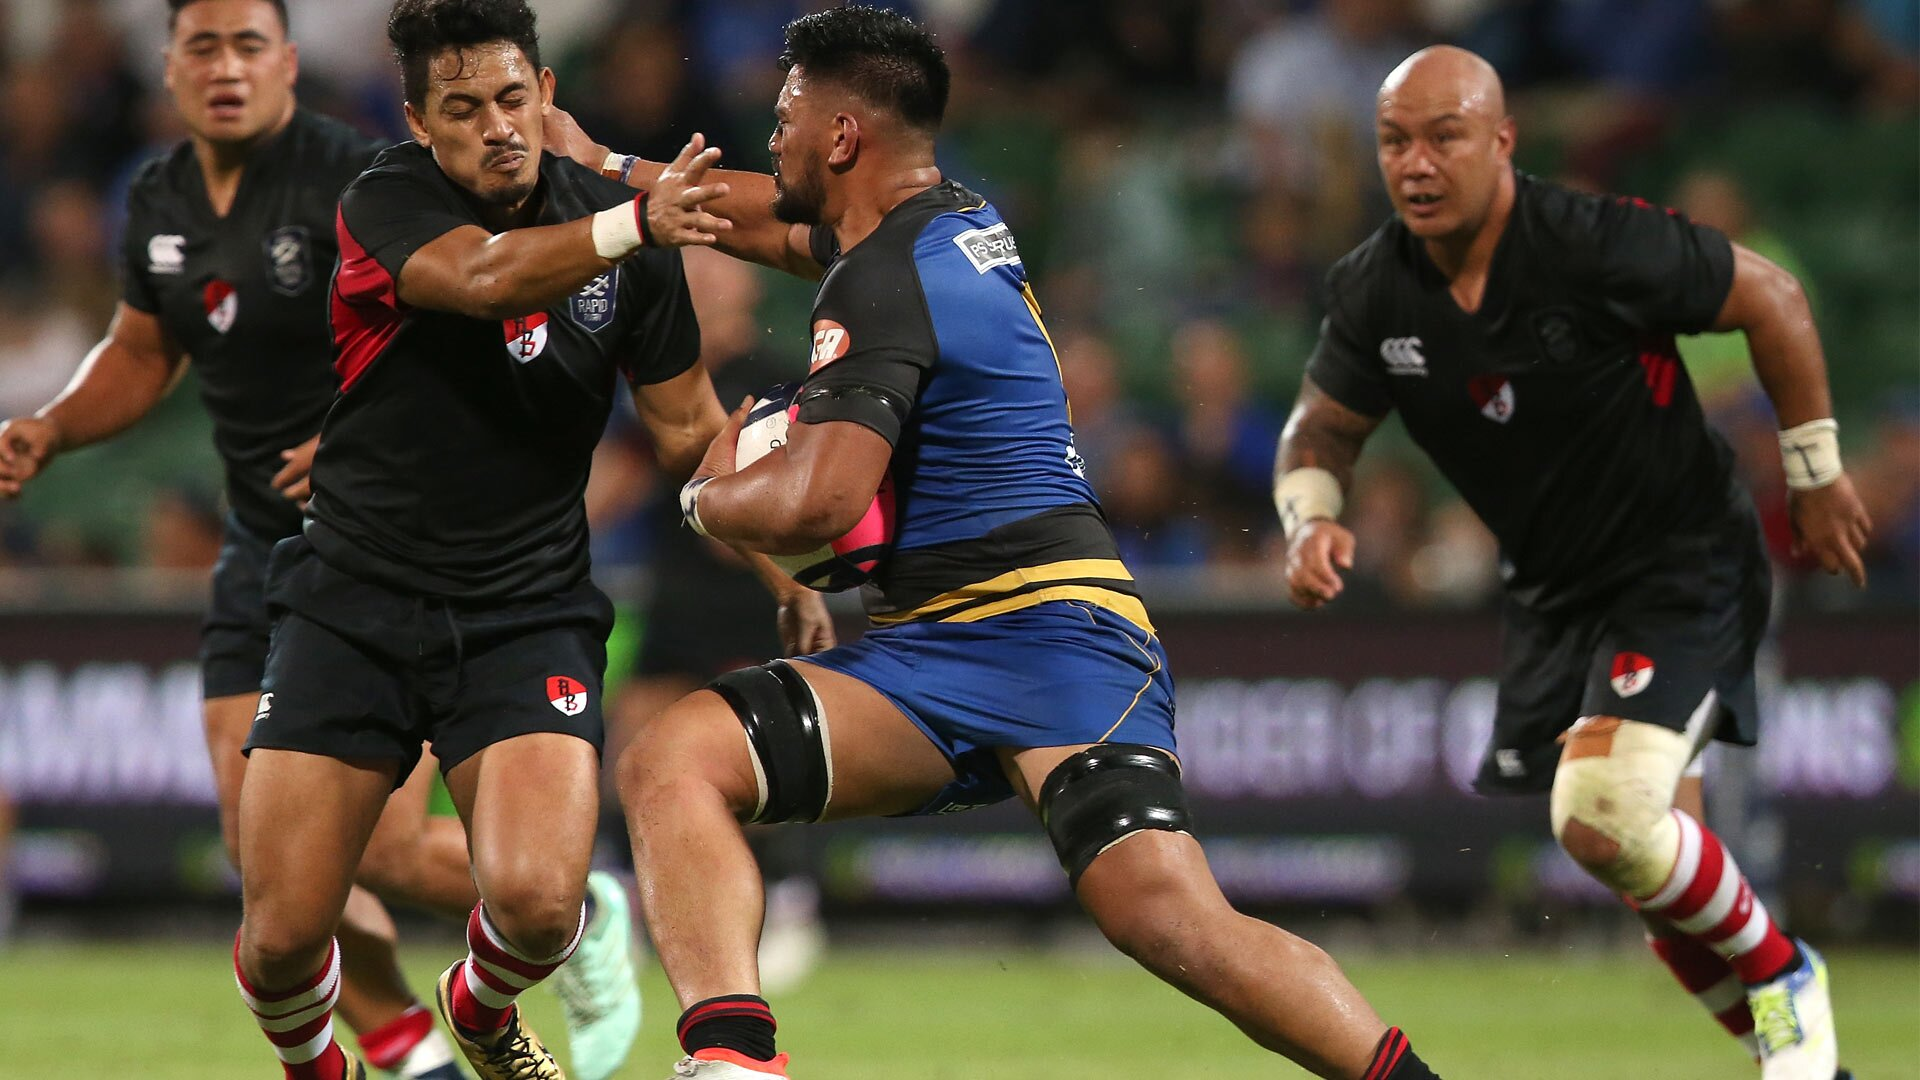 Western Force claim another big win